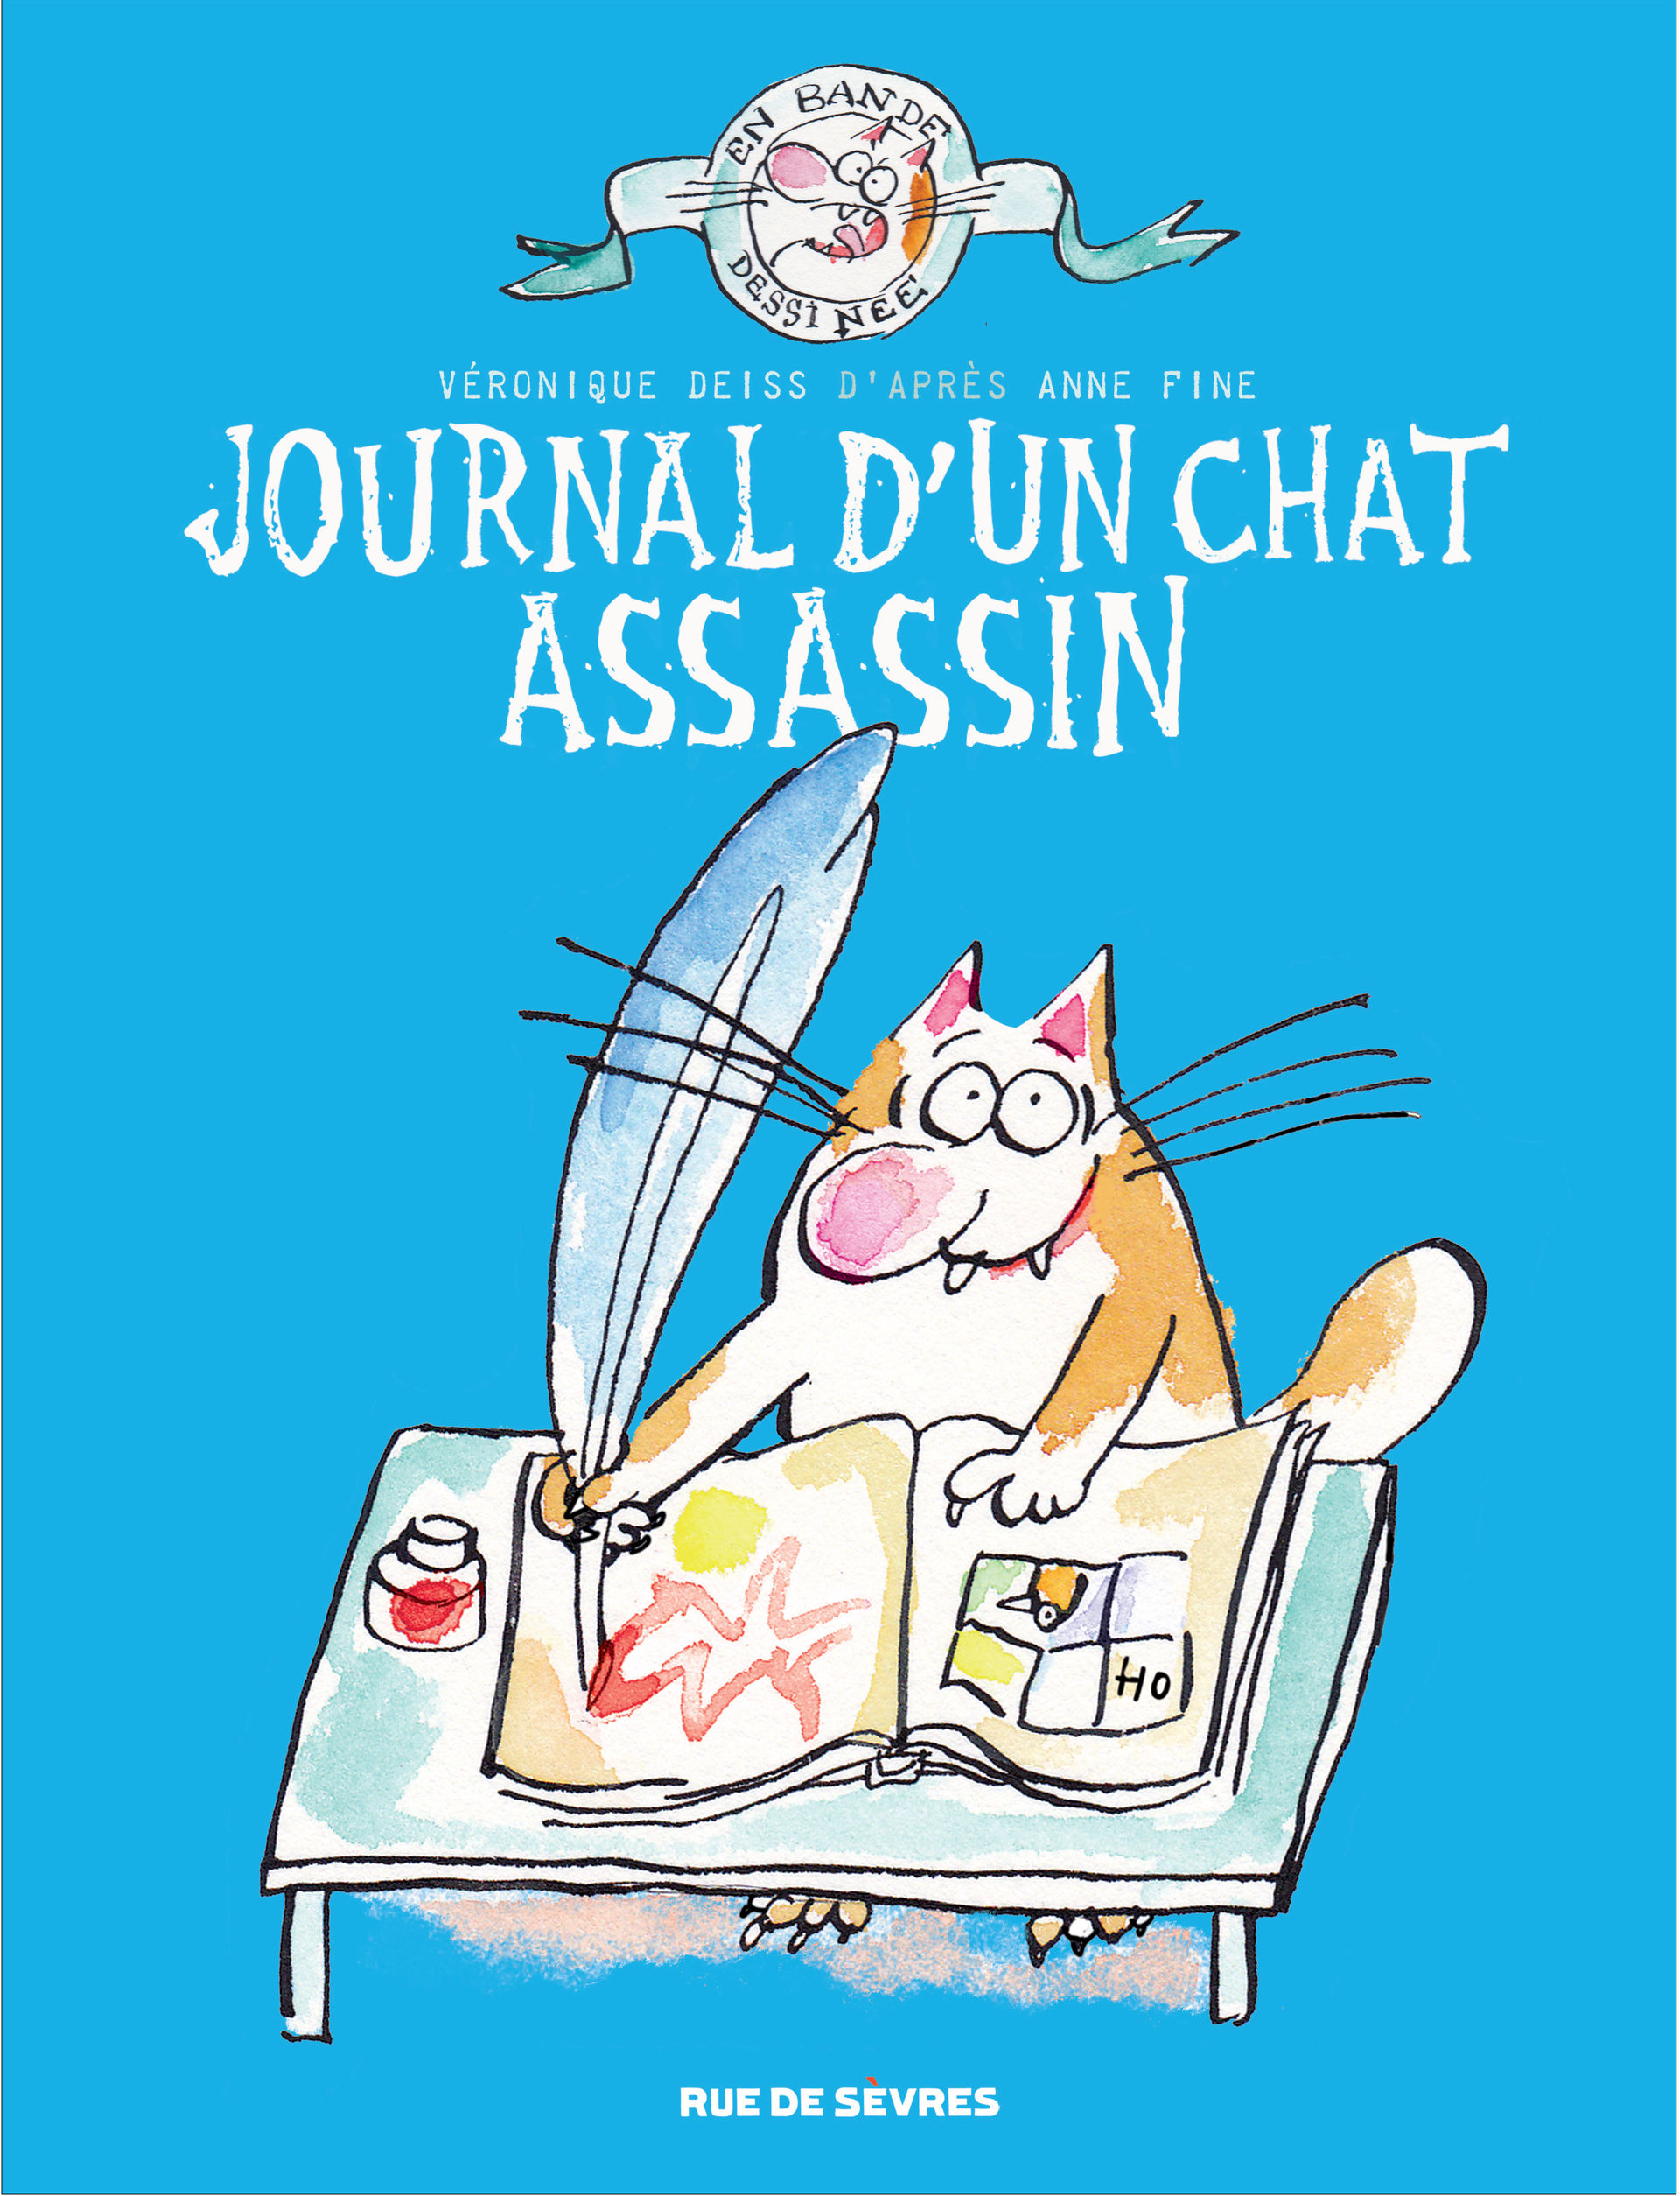 Le chat assassin 1 - Journal d'un chat assassin